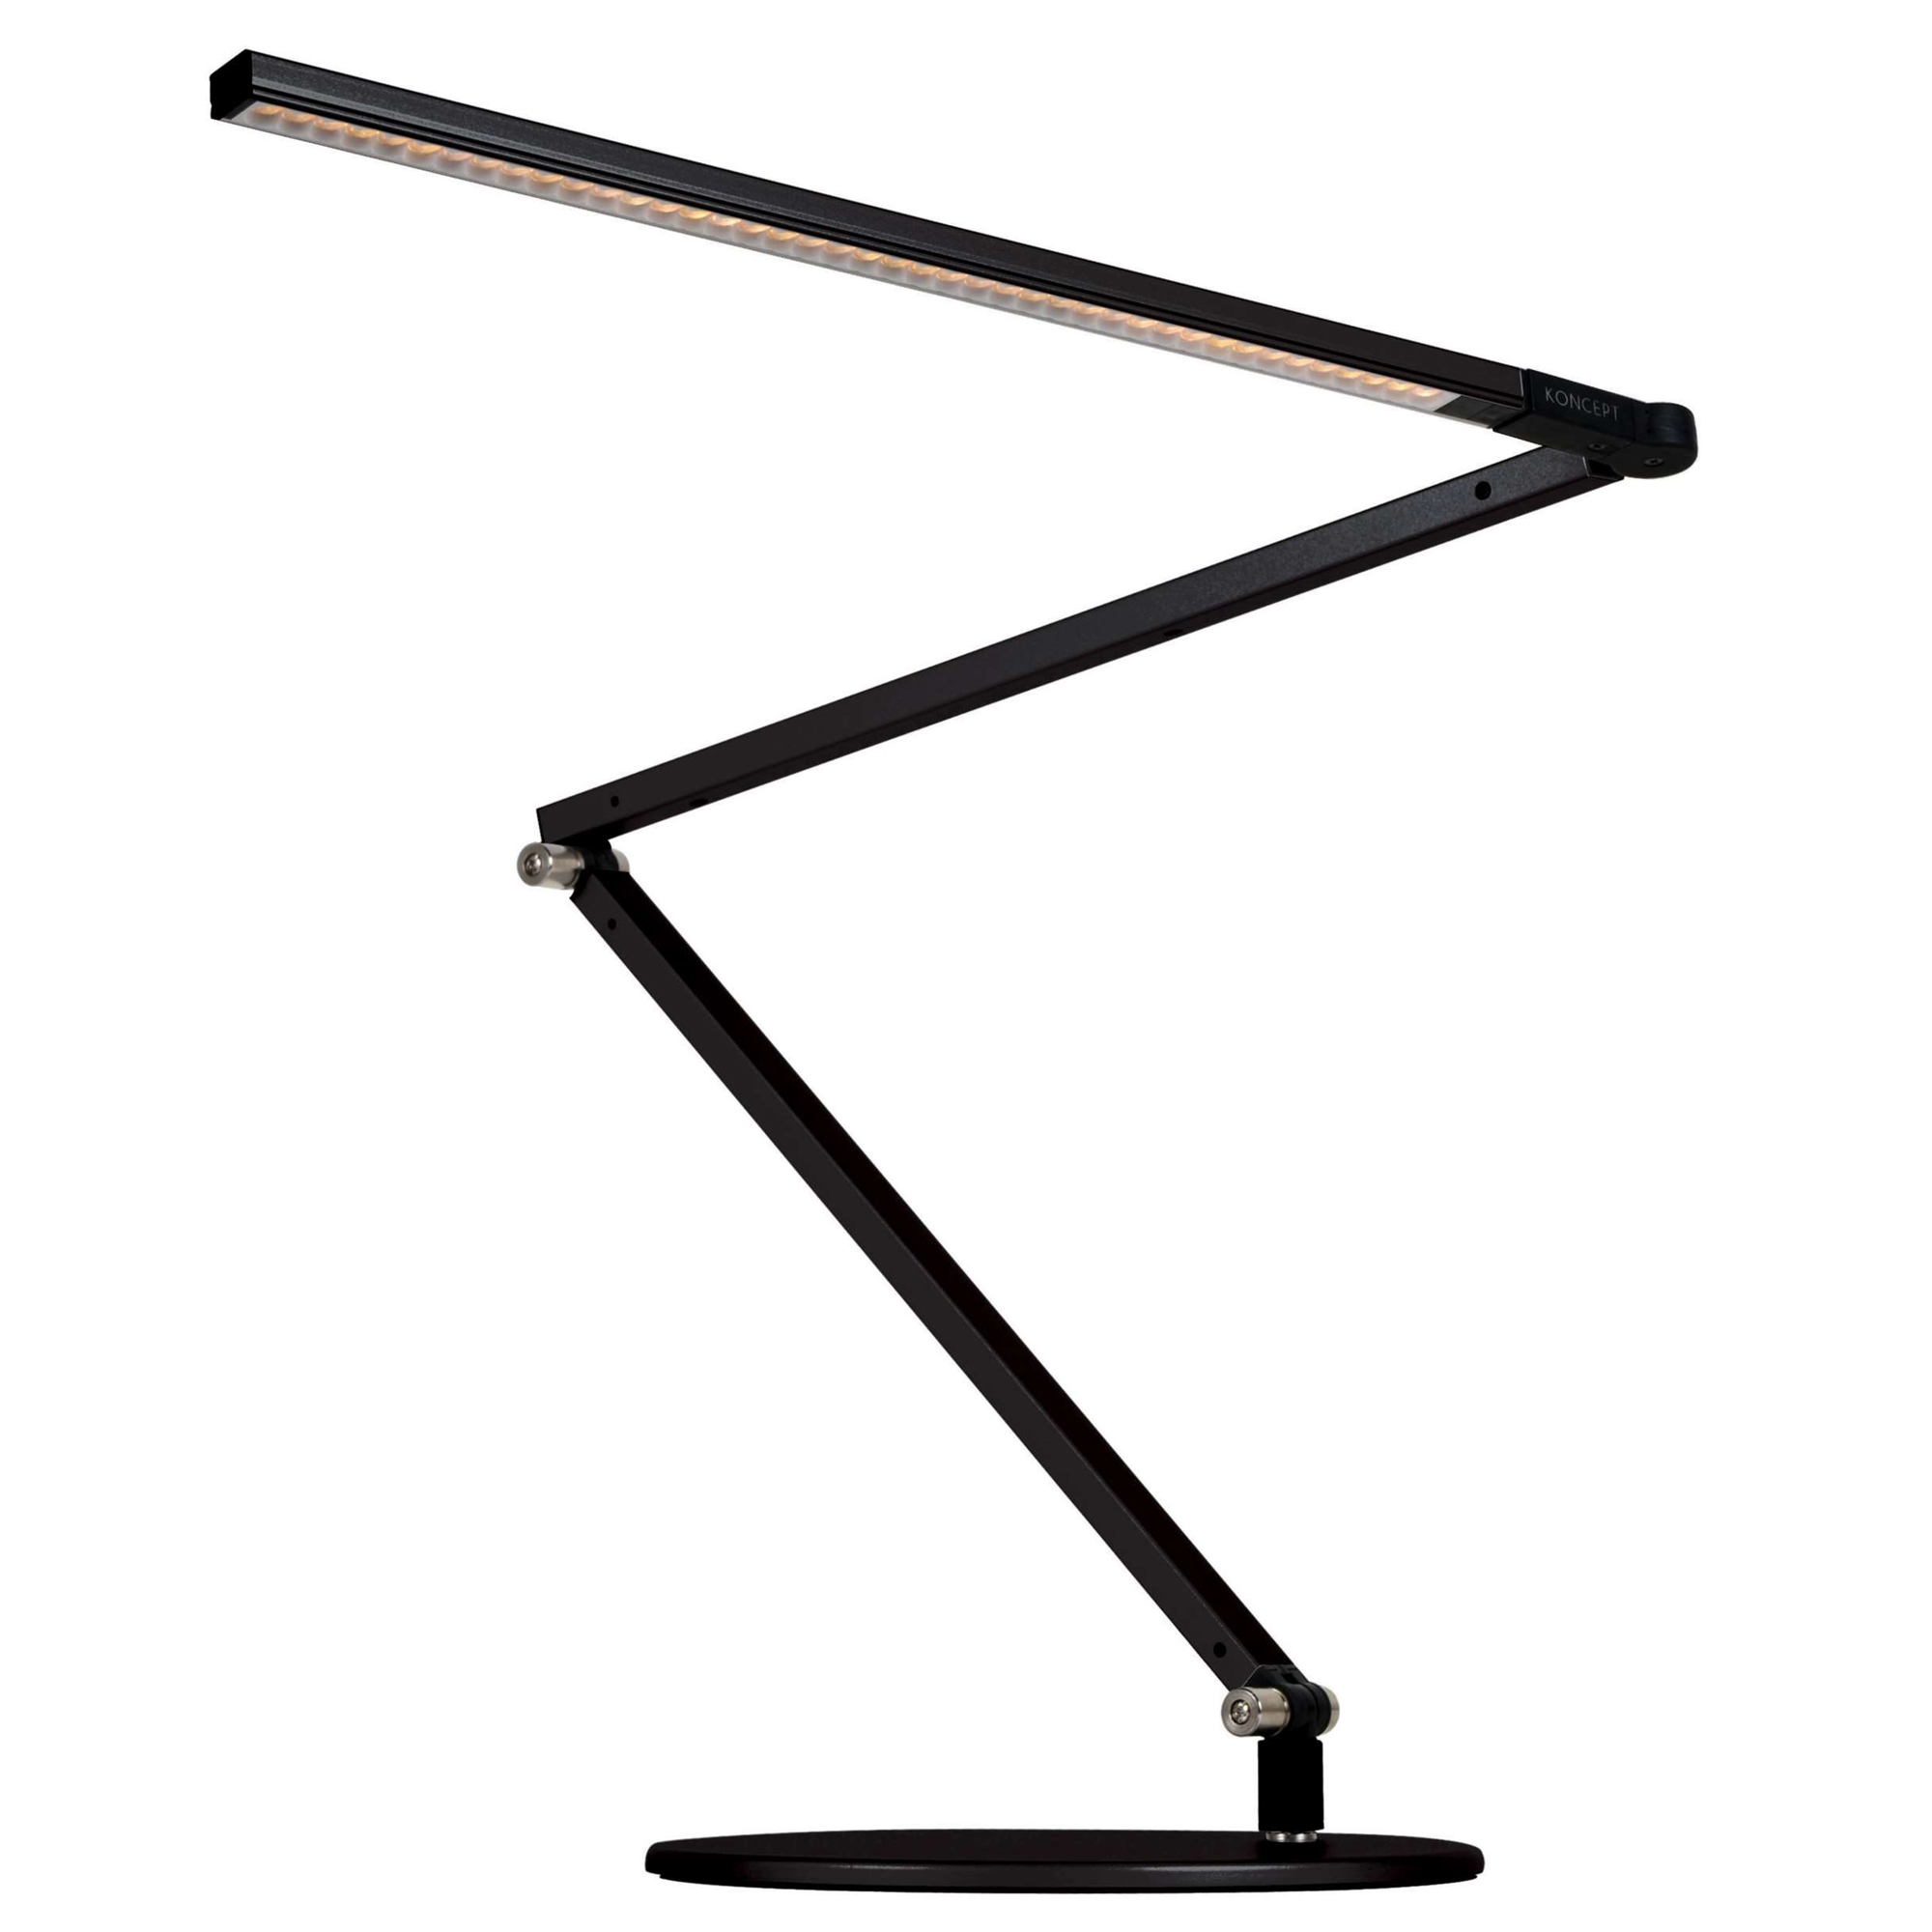 Delightful Z Bar LED Desk Lamp By Koncept Lighting | AR3000 CD MBK DSK